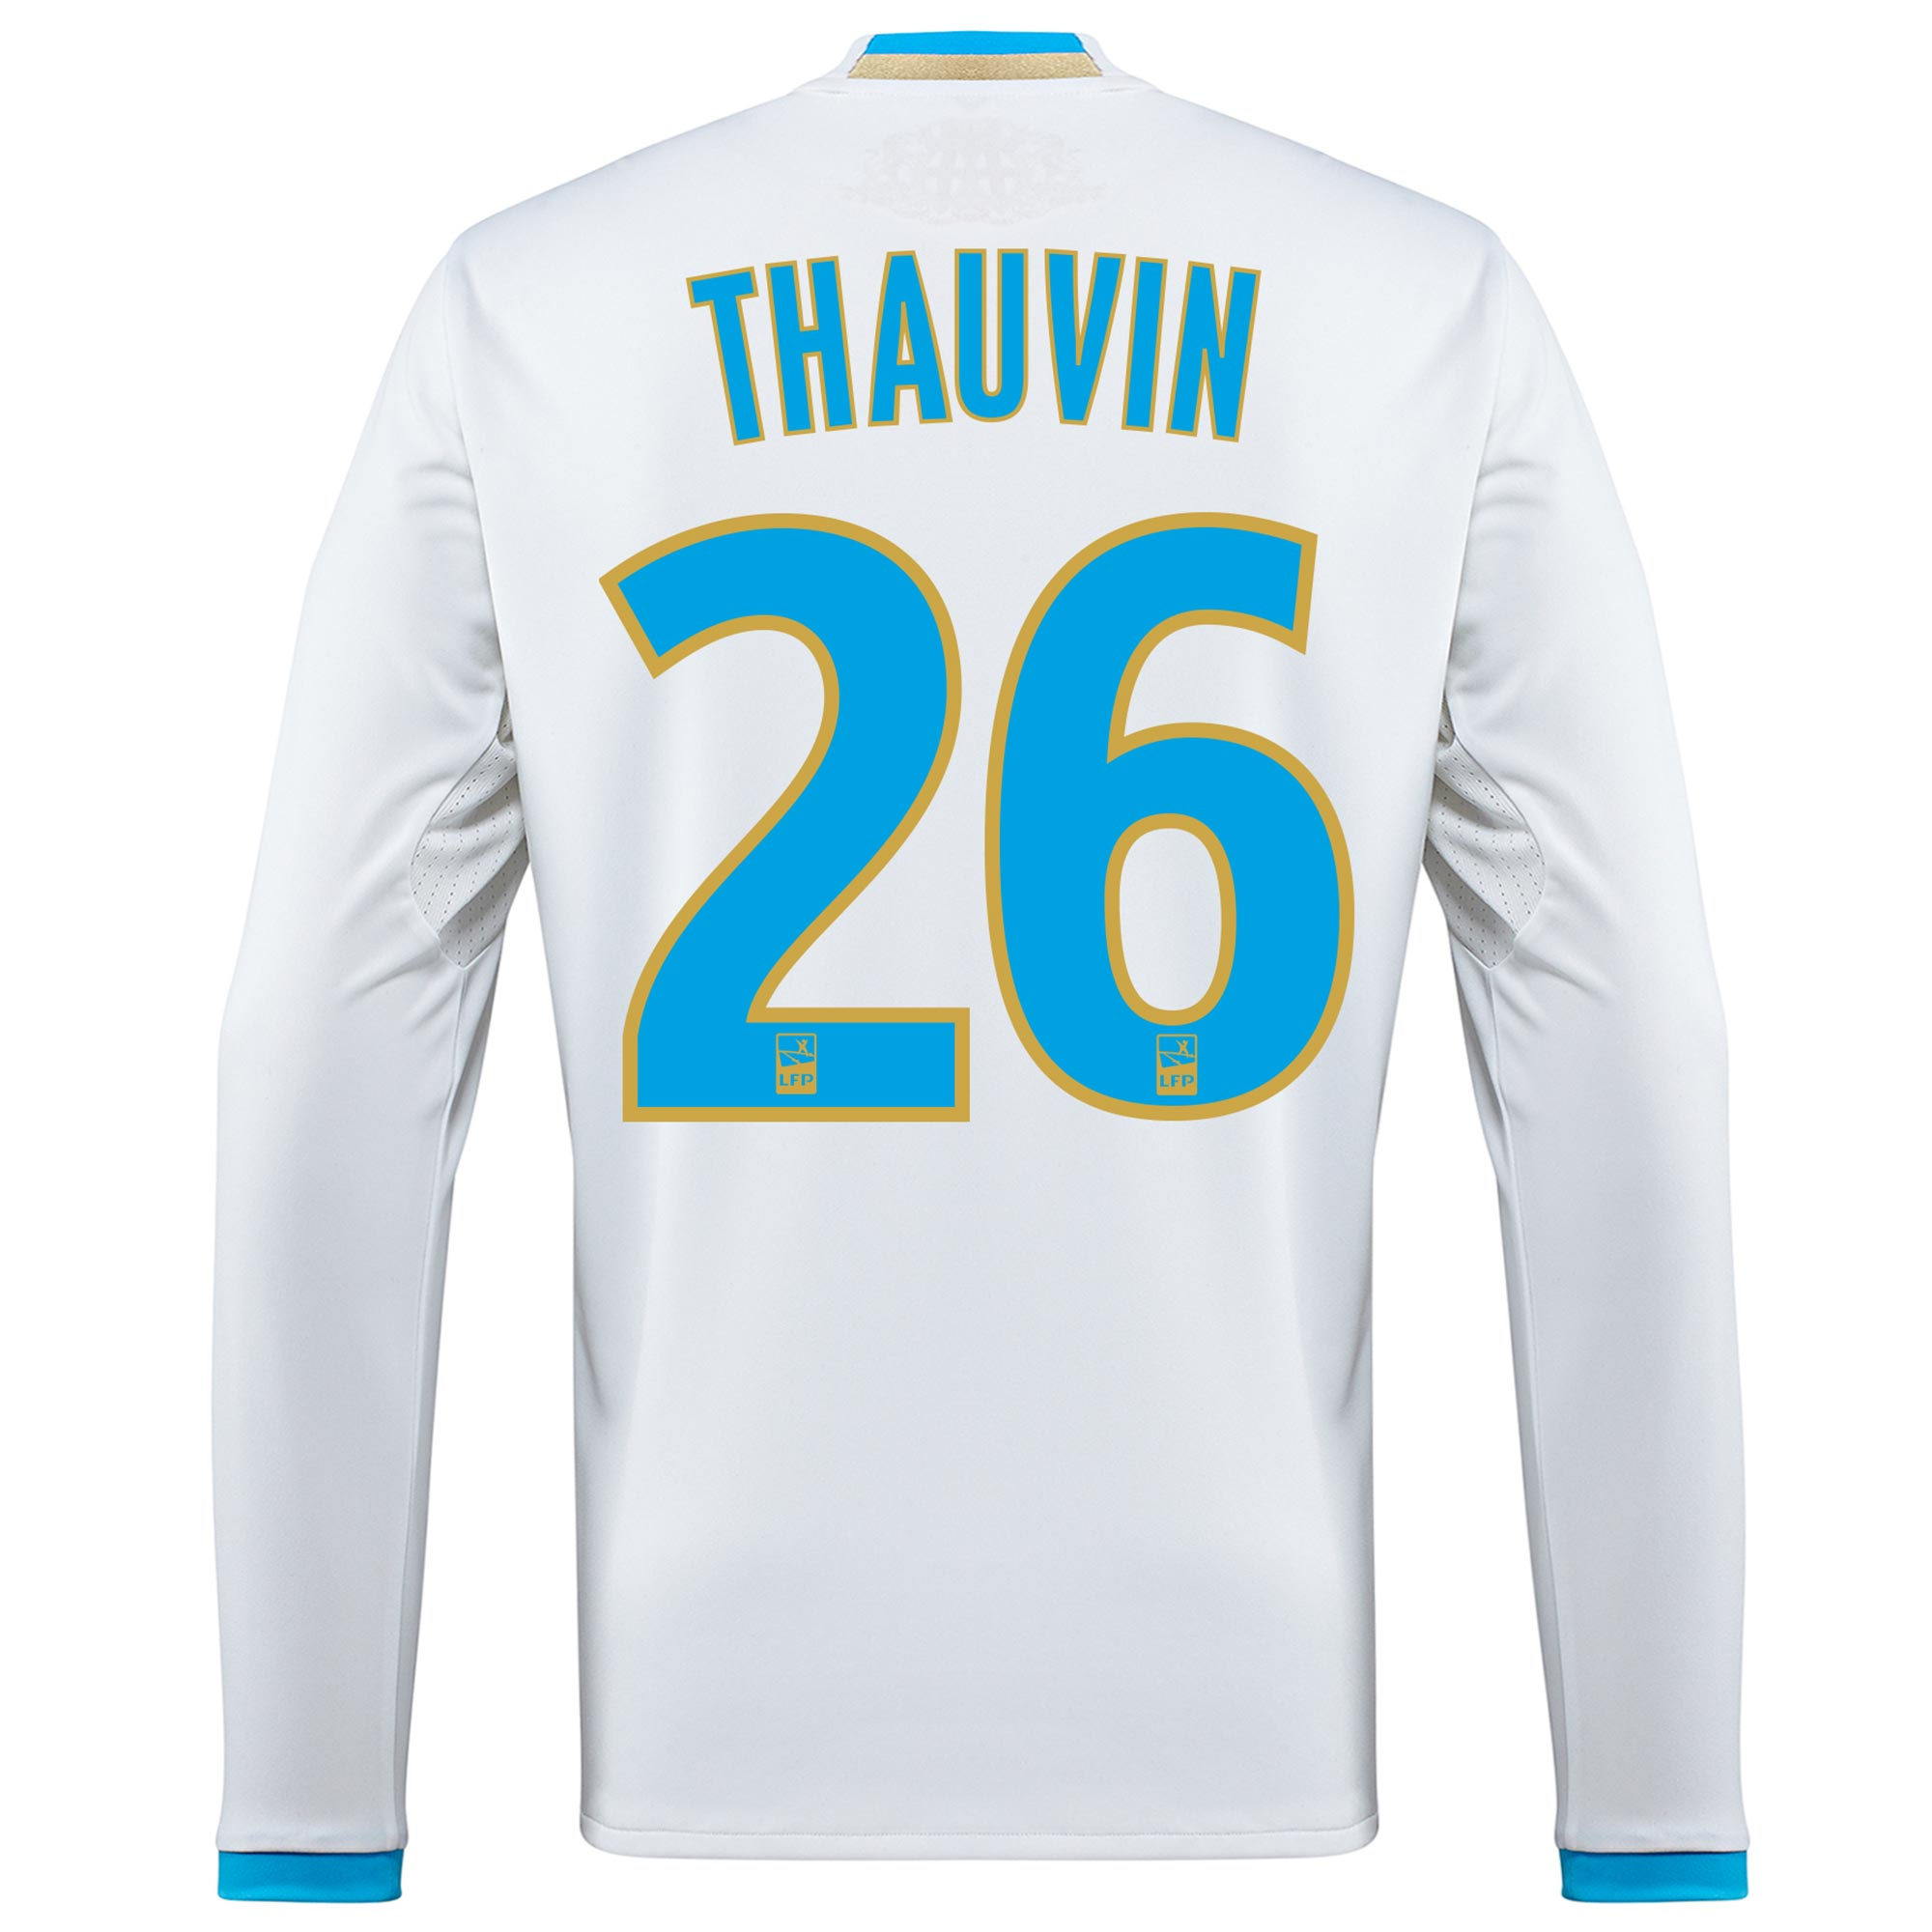 Olympique de Marseille Home Shirt 2016/17 - Long Sleeved with Thauvin